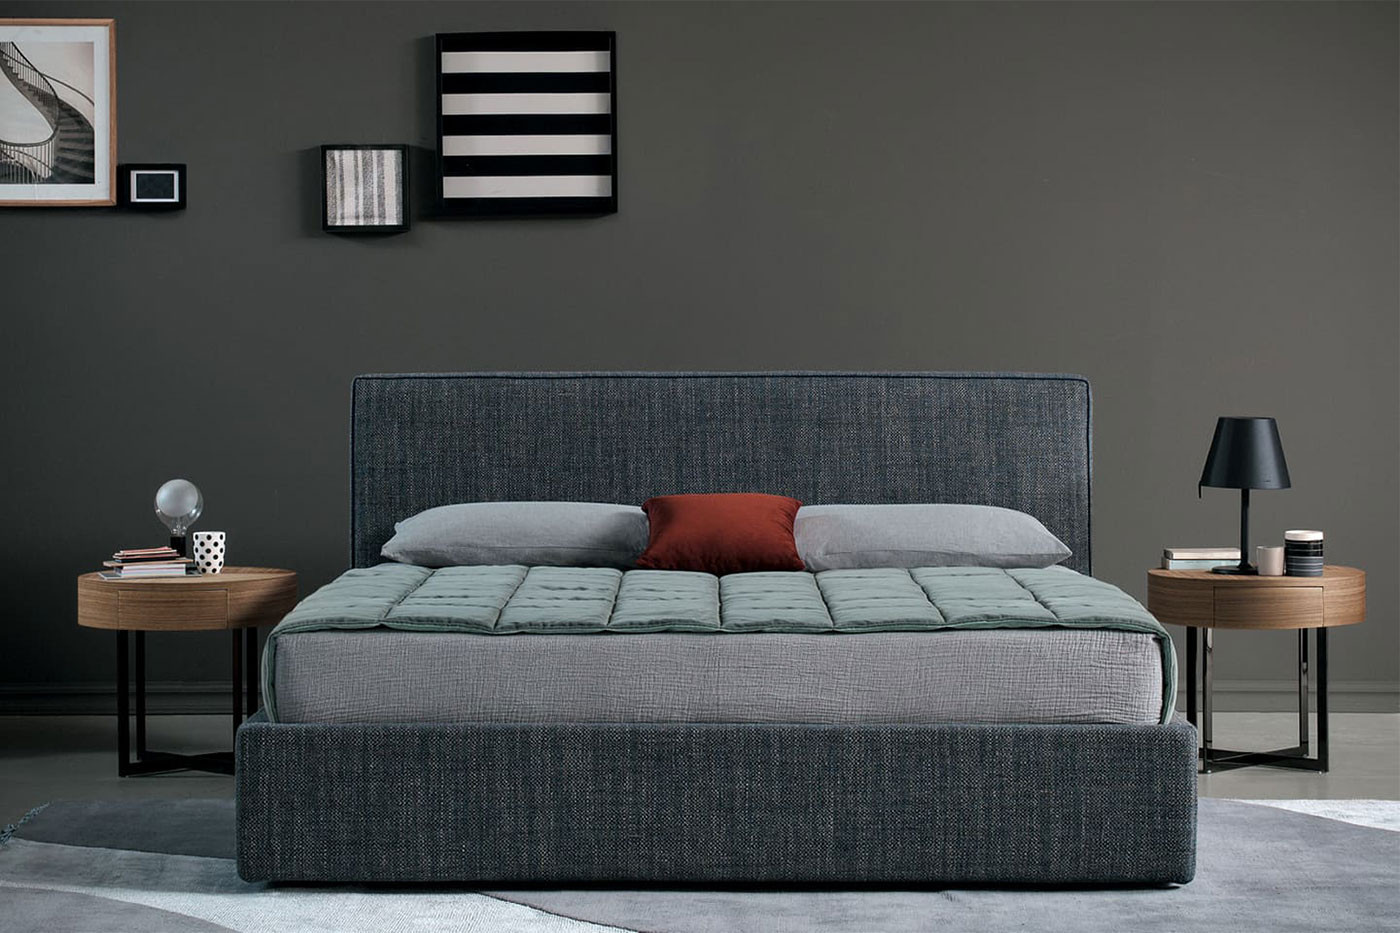 Upholstered bed with a squared headboard and padded frame in removable fabric, velvet or leather with piping